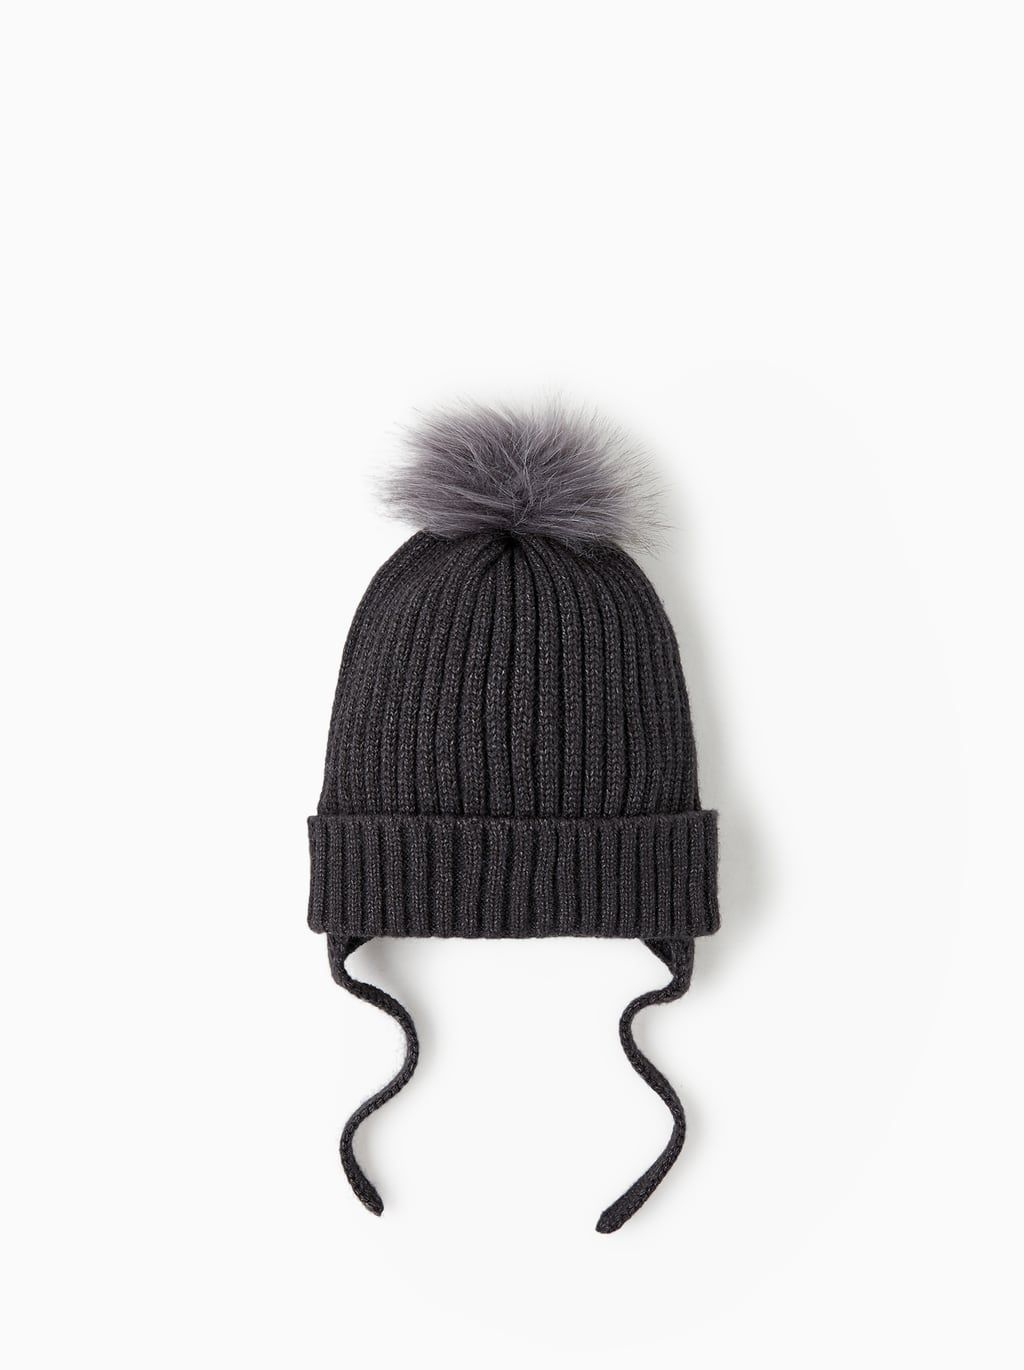 4f518d03 Ribbed cap with pompom   baby duds   Little boy fashion, Baby boy ...